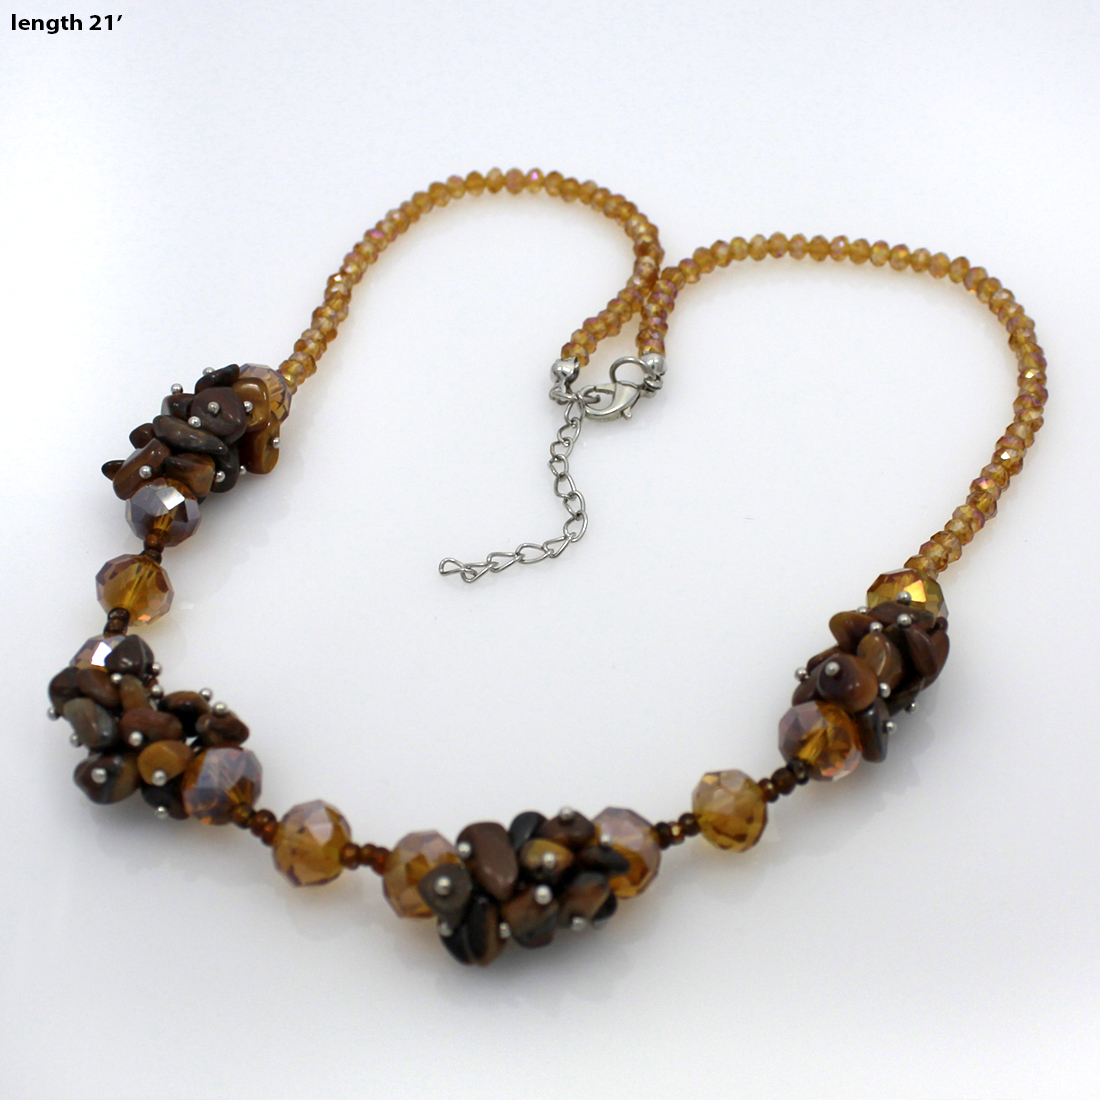 NKL02-BROWN - NKL02-BROWN WHOLESALE GENUINE CRYSTAL AND GLASS NECKLACE SET